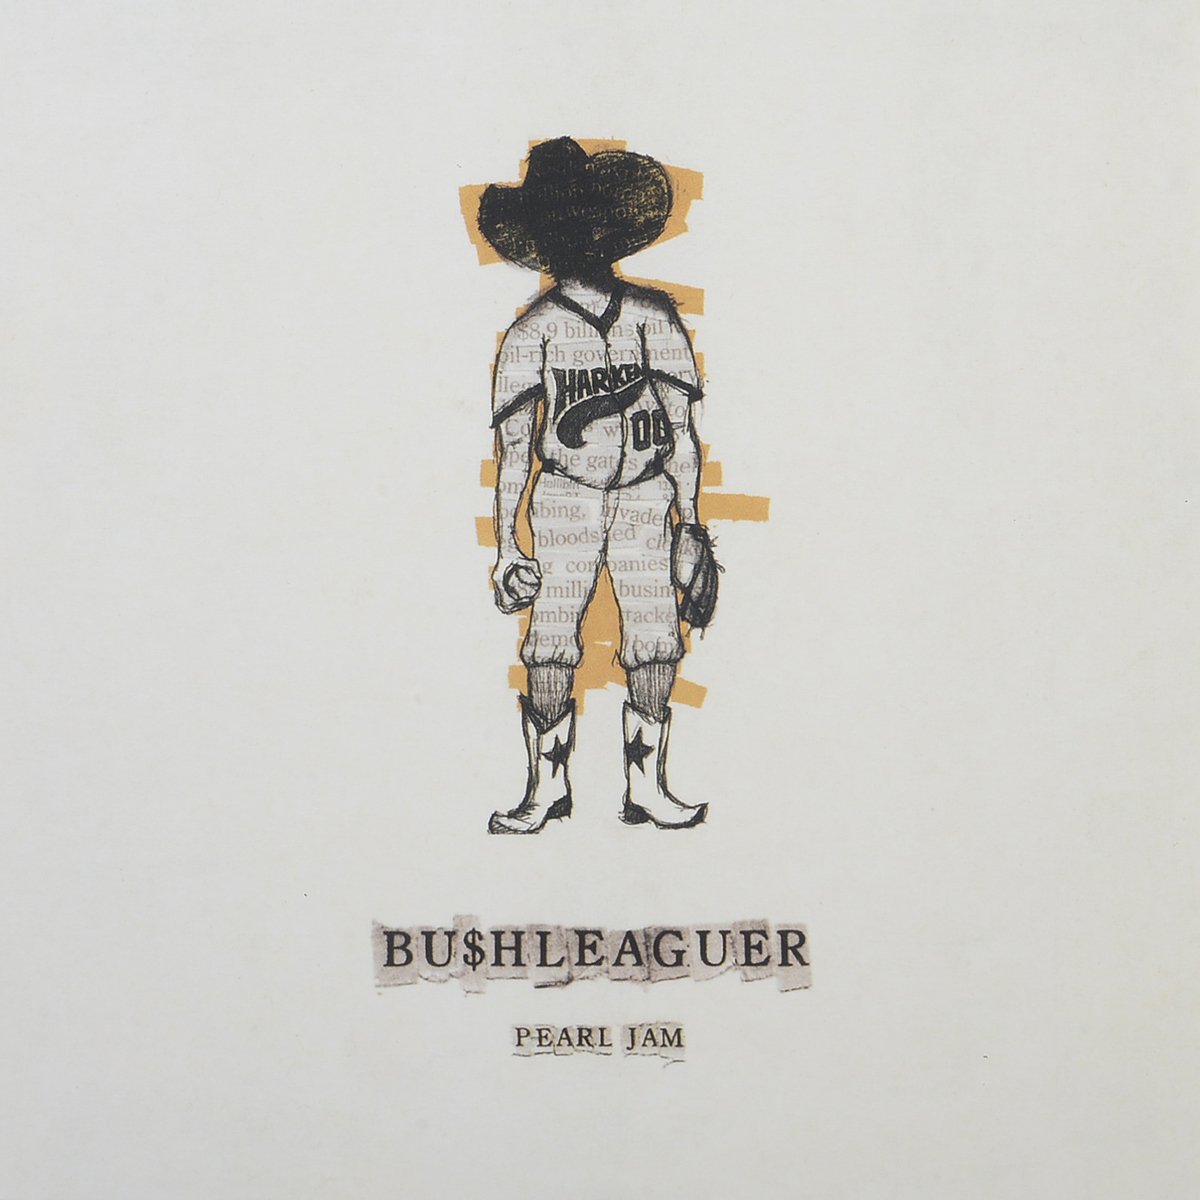 Pearl Jam Pearl Jam. Bu$hleaguer / Love Boat Captain (LP) the jam the jam all mod cons lp